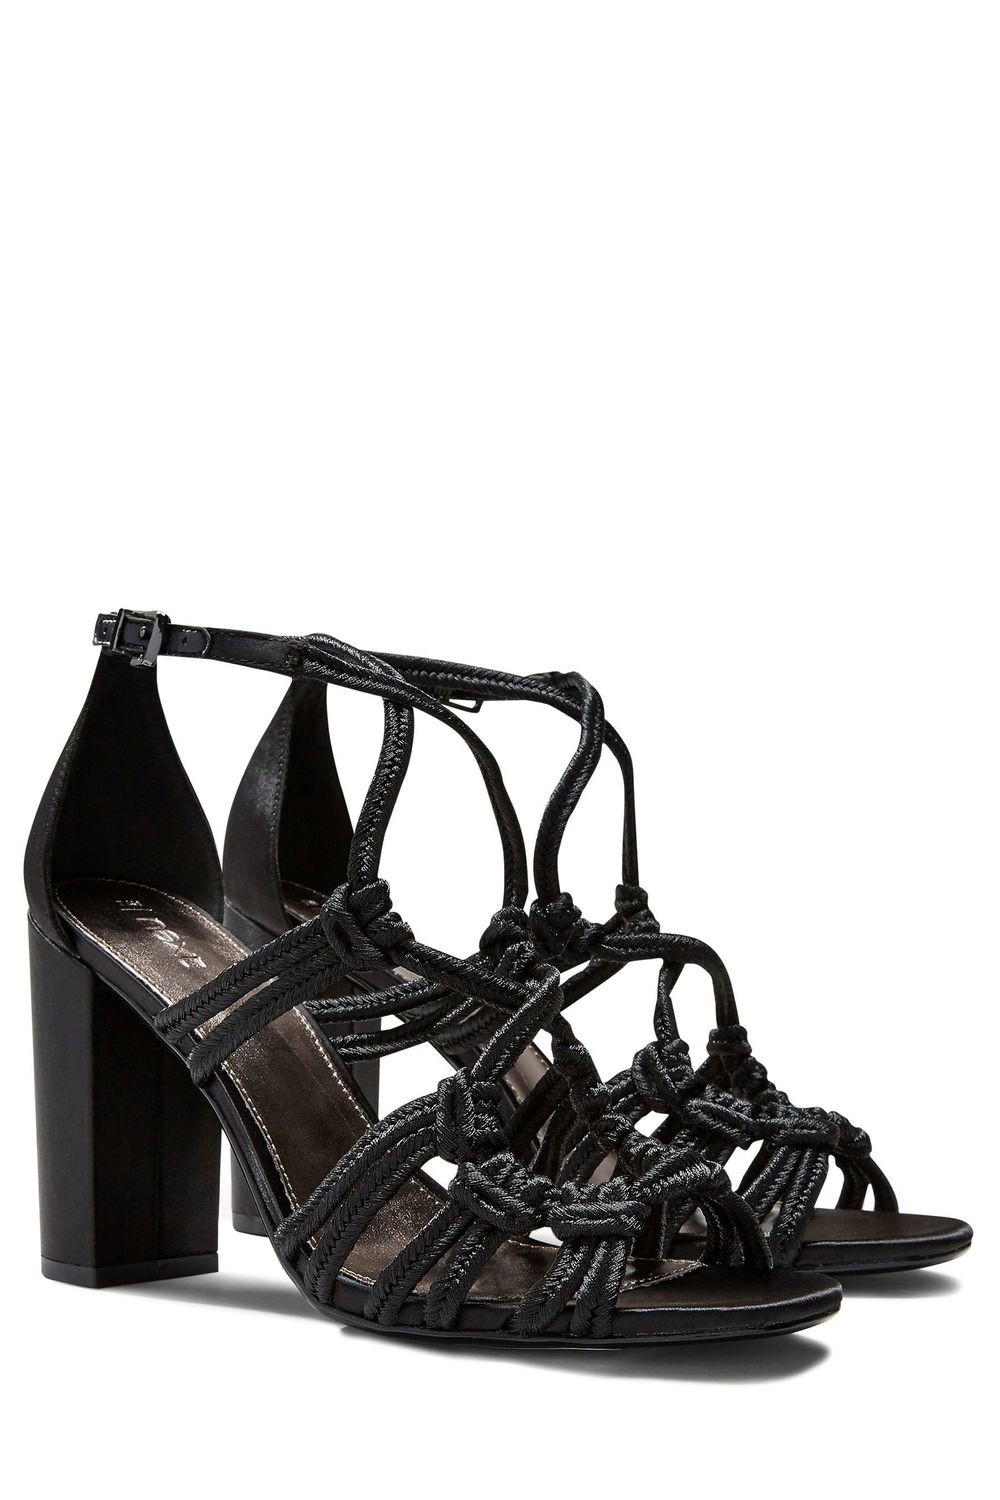 Next Rope Block Black Heels